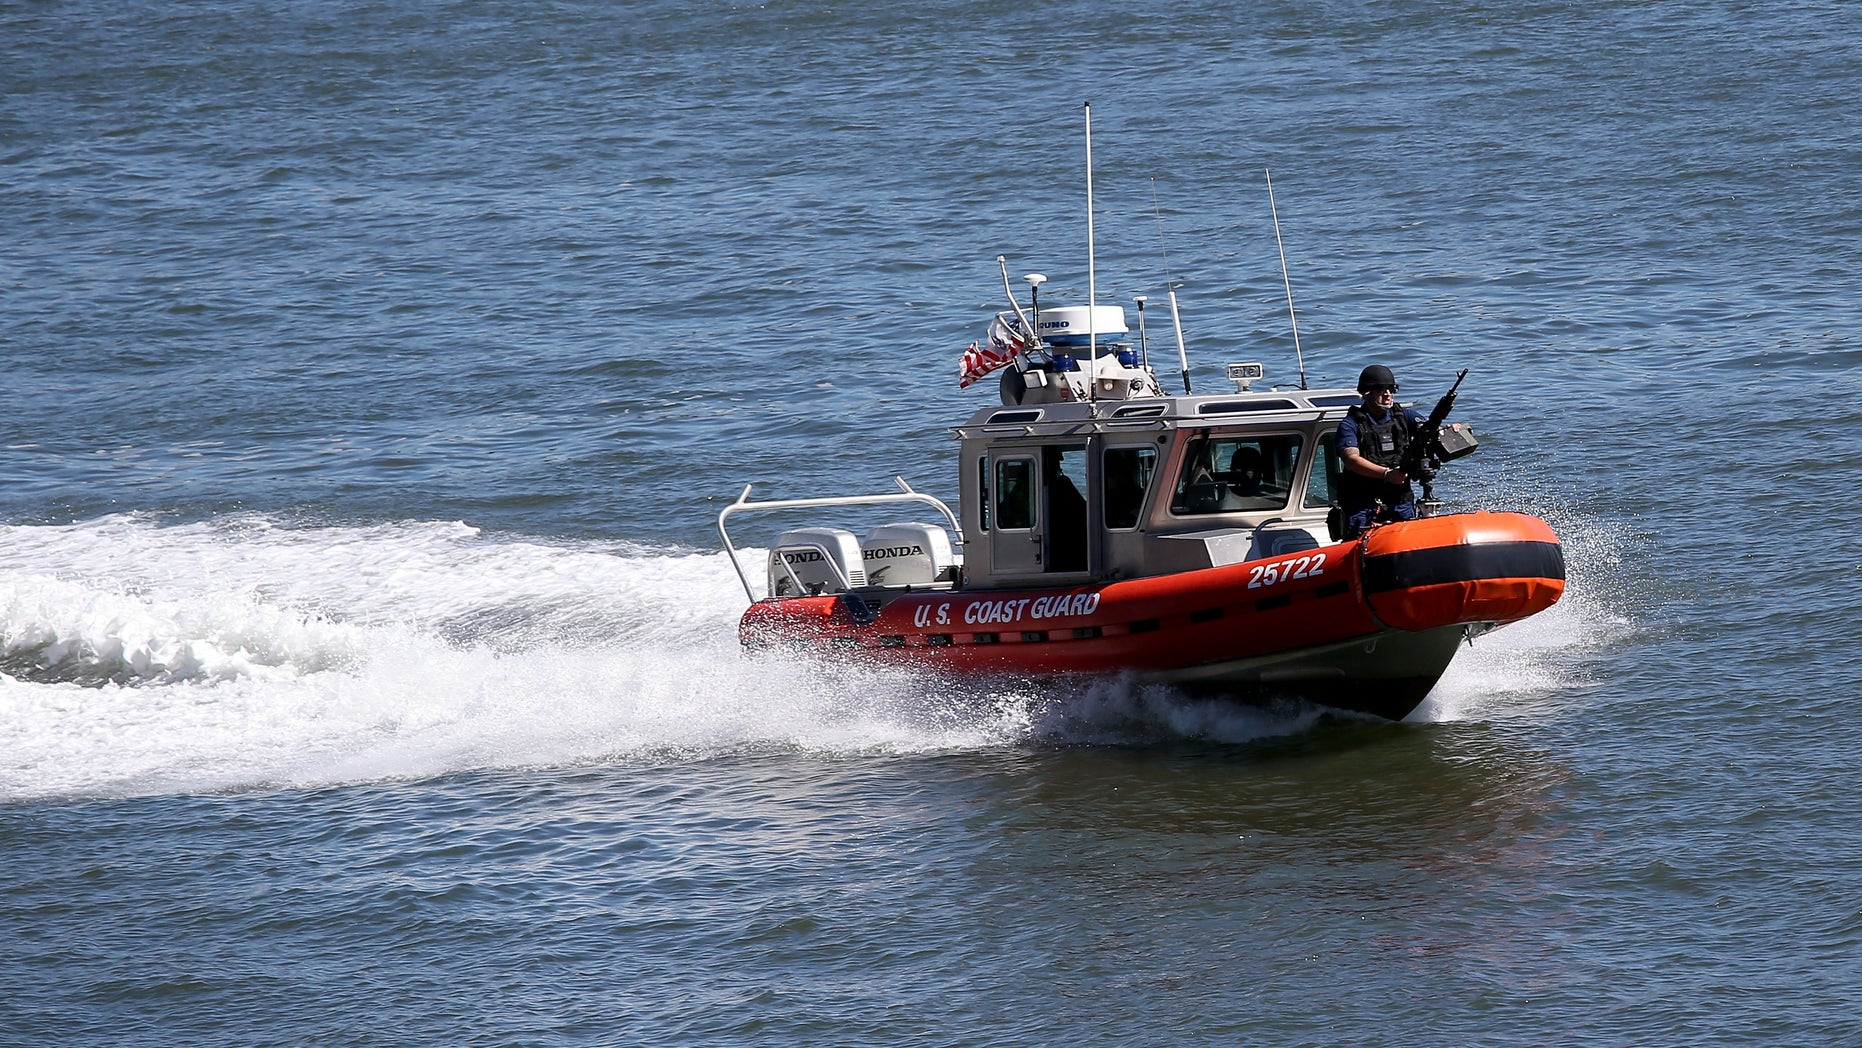 NEW YORK, NY - SEPTEMBER 23:  A U.S. Coast Guard boat patrols the East River near the United Nations building ahead of the 68th session of the General Assembly on September 23, 2013 in New York City. With an influx of foreign dignitaries visiting heavy security and multiple road closures in the city is expected for this week's 68th session of the General Assembly of the United Nations.  (Photo by John Moore/Getty Images)